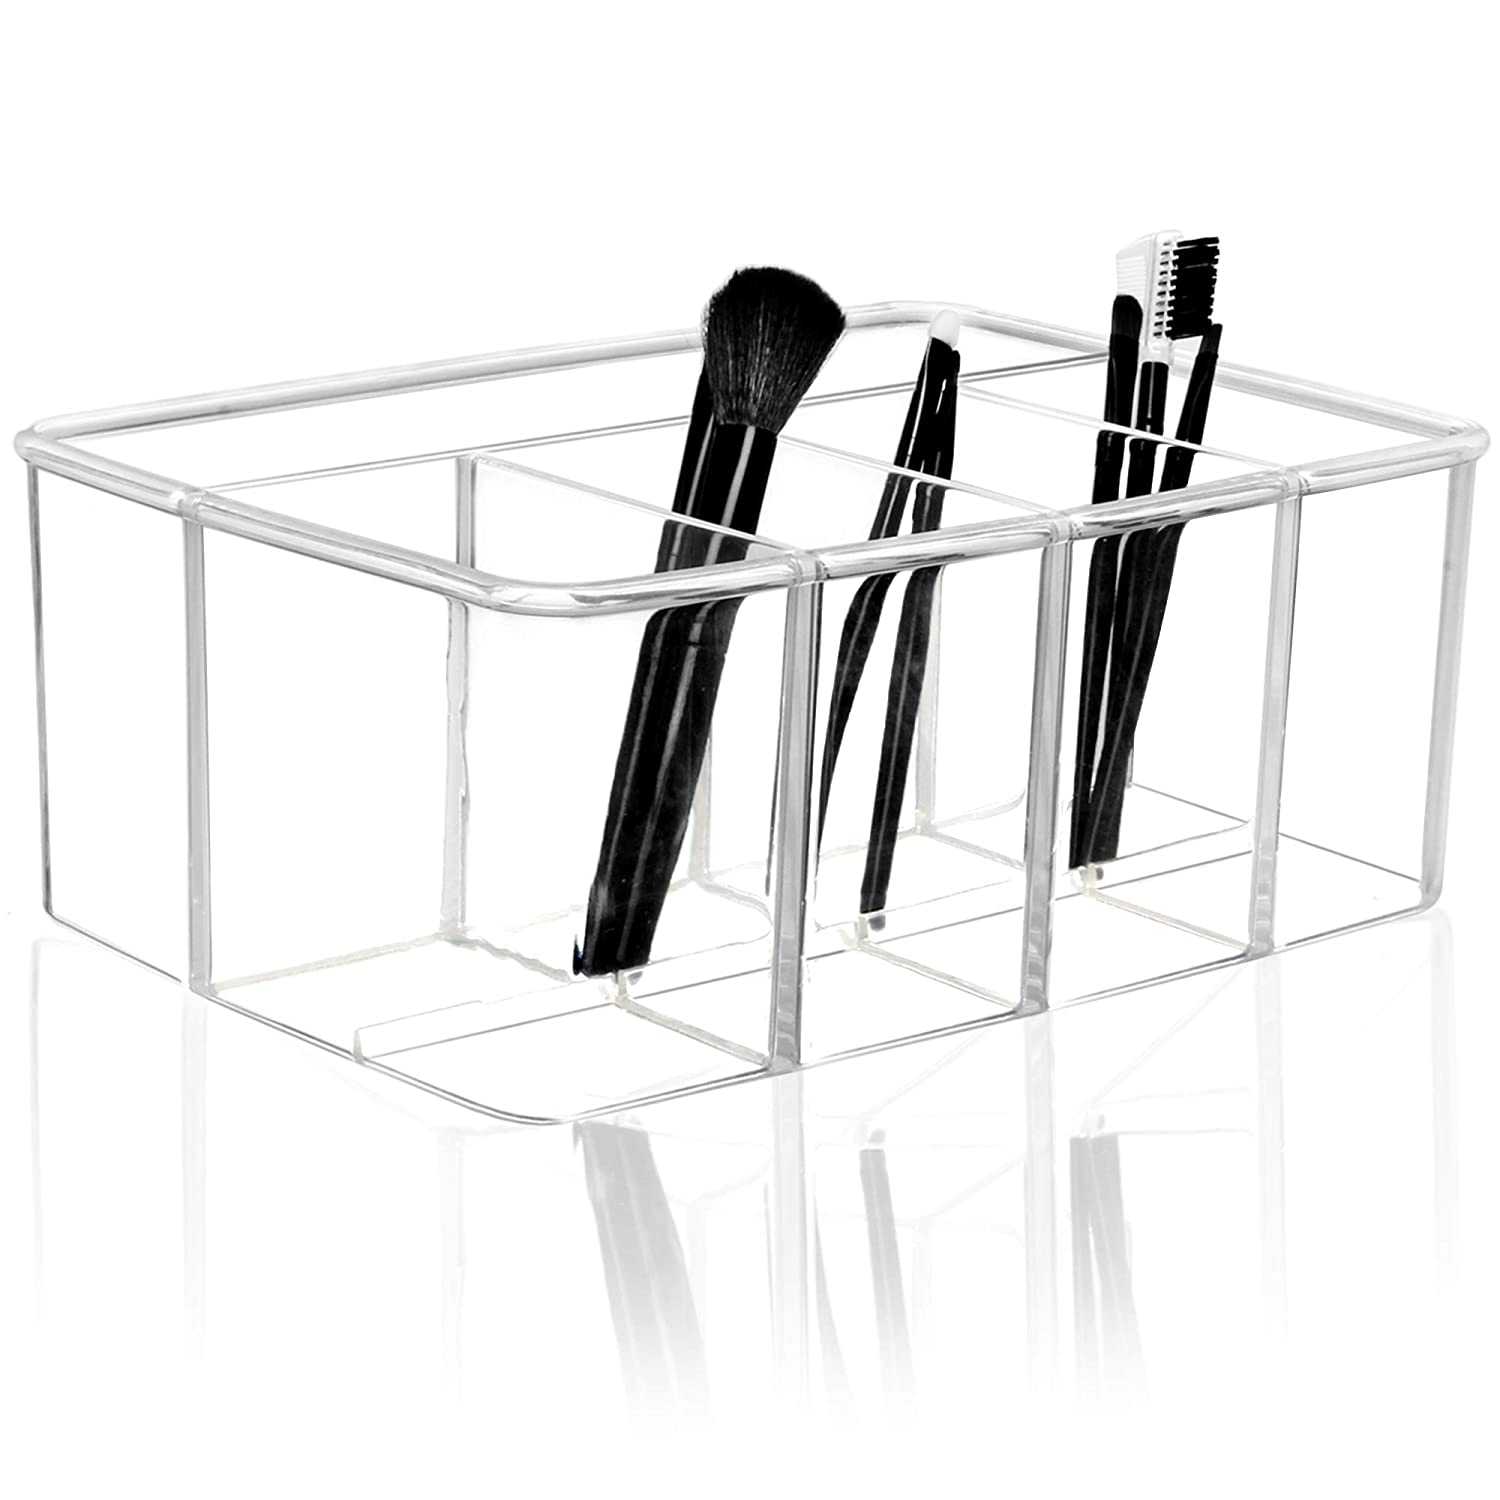 Youngever Large Clear Plastic Organizer, Makeup organizer, 5-Compartments